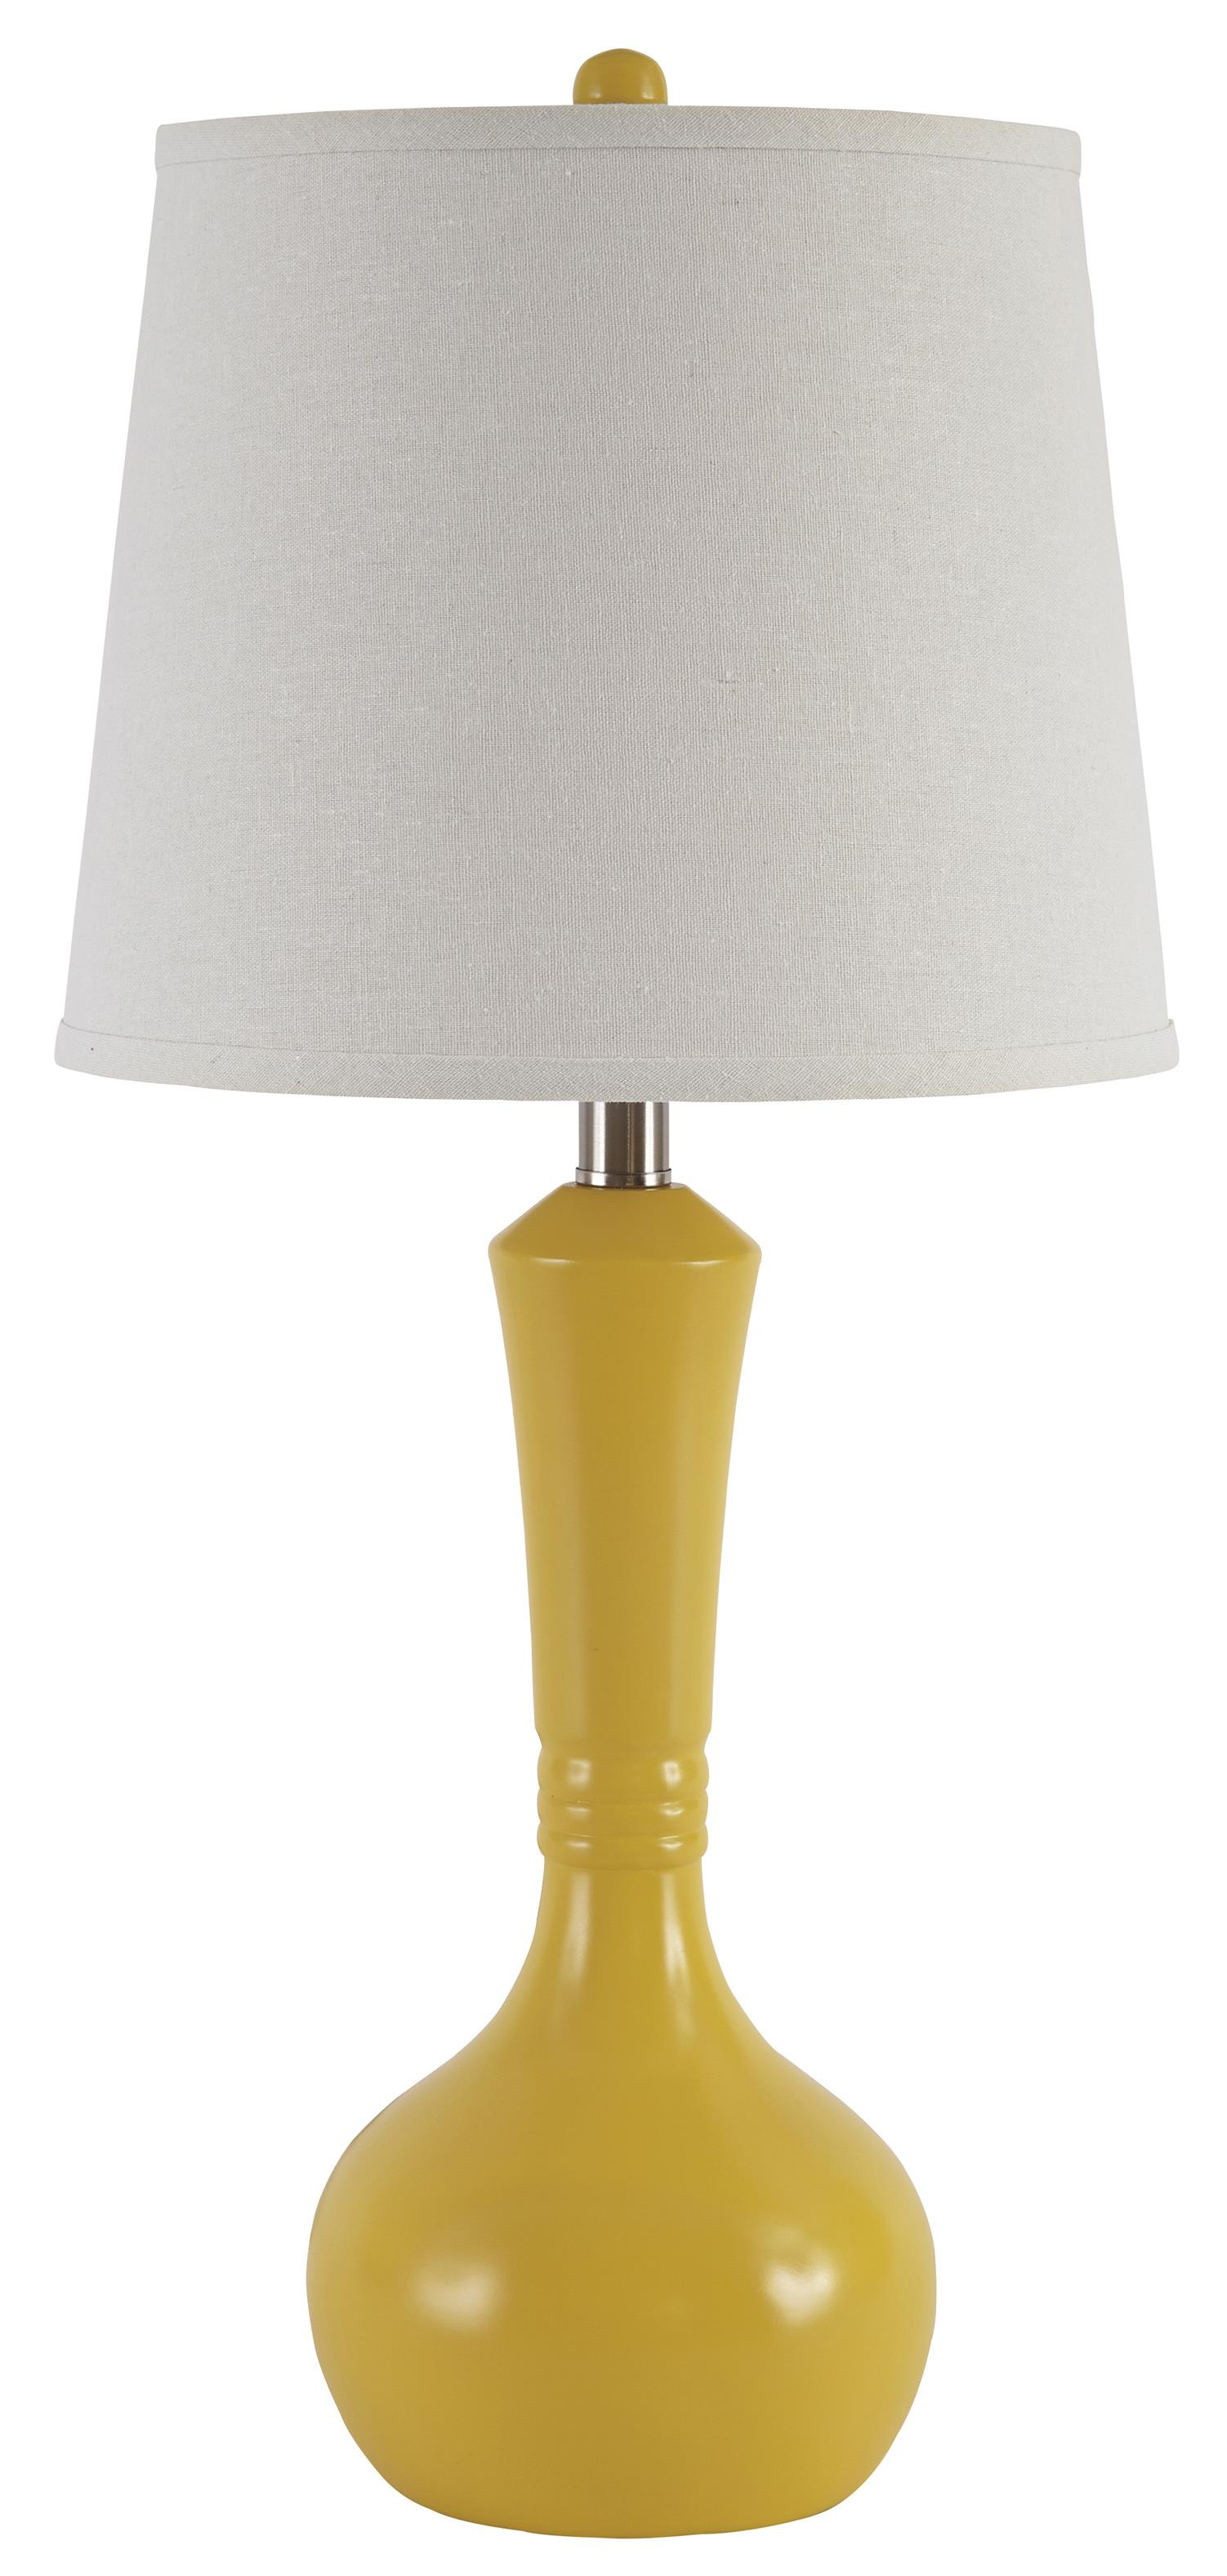 Signature Design by Ashley Lamps - Contemporary Set of 2 Synthie Poly Table Lamps - Item Number: L243104